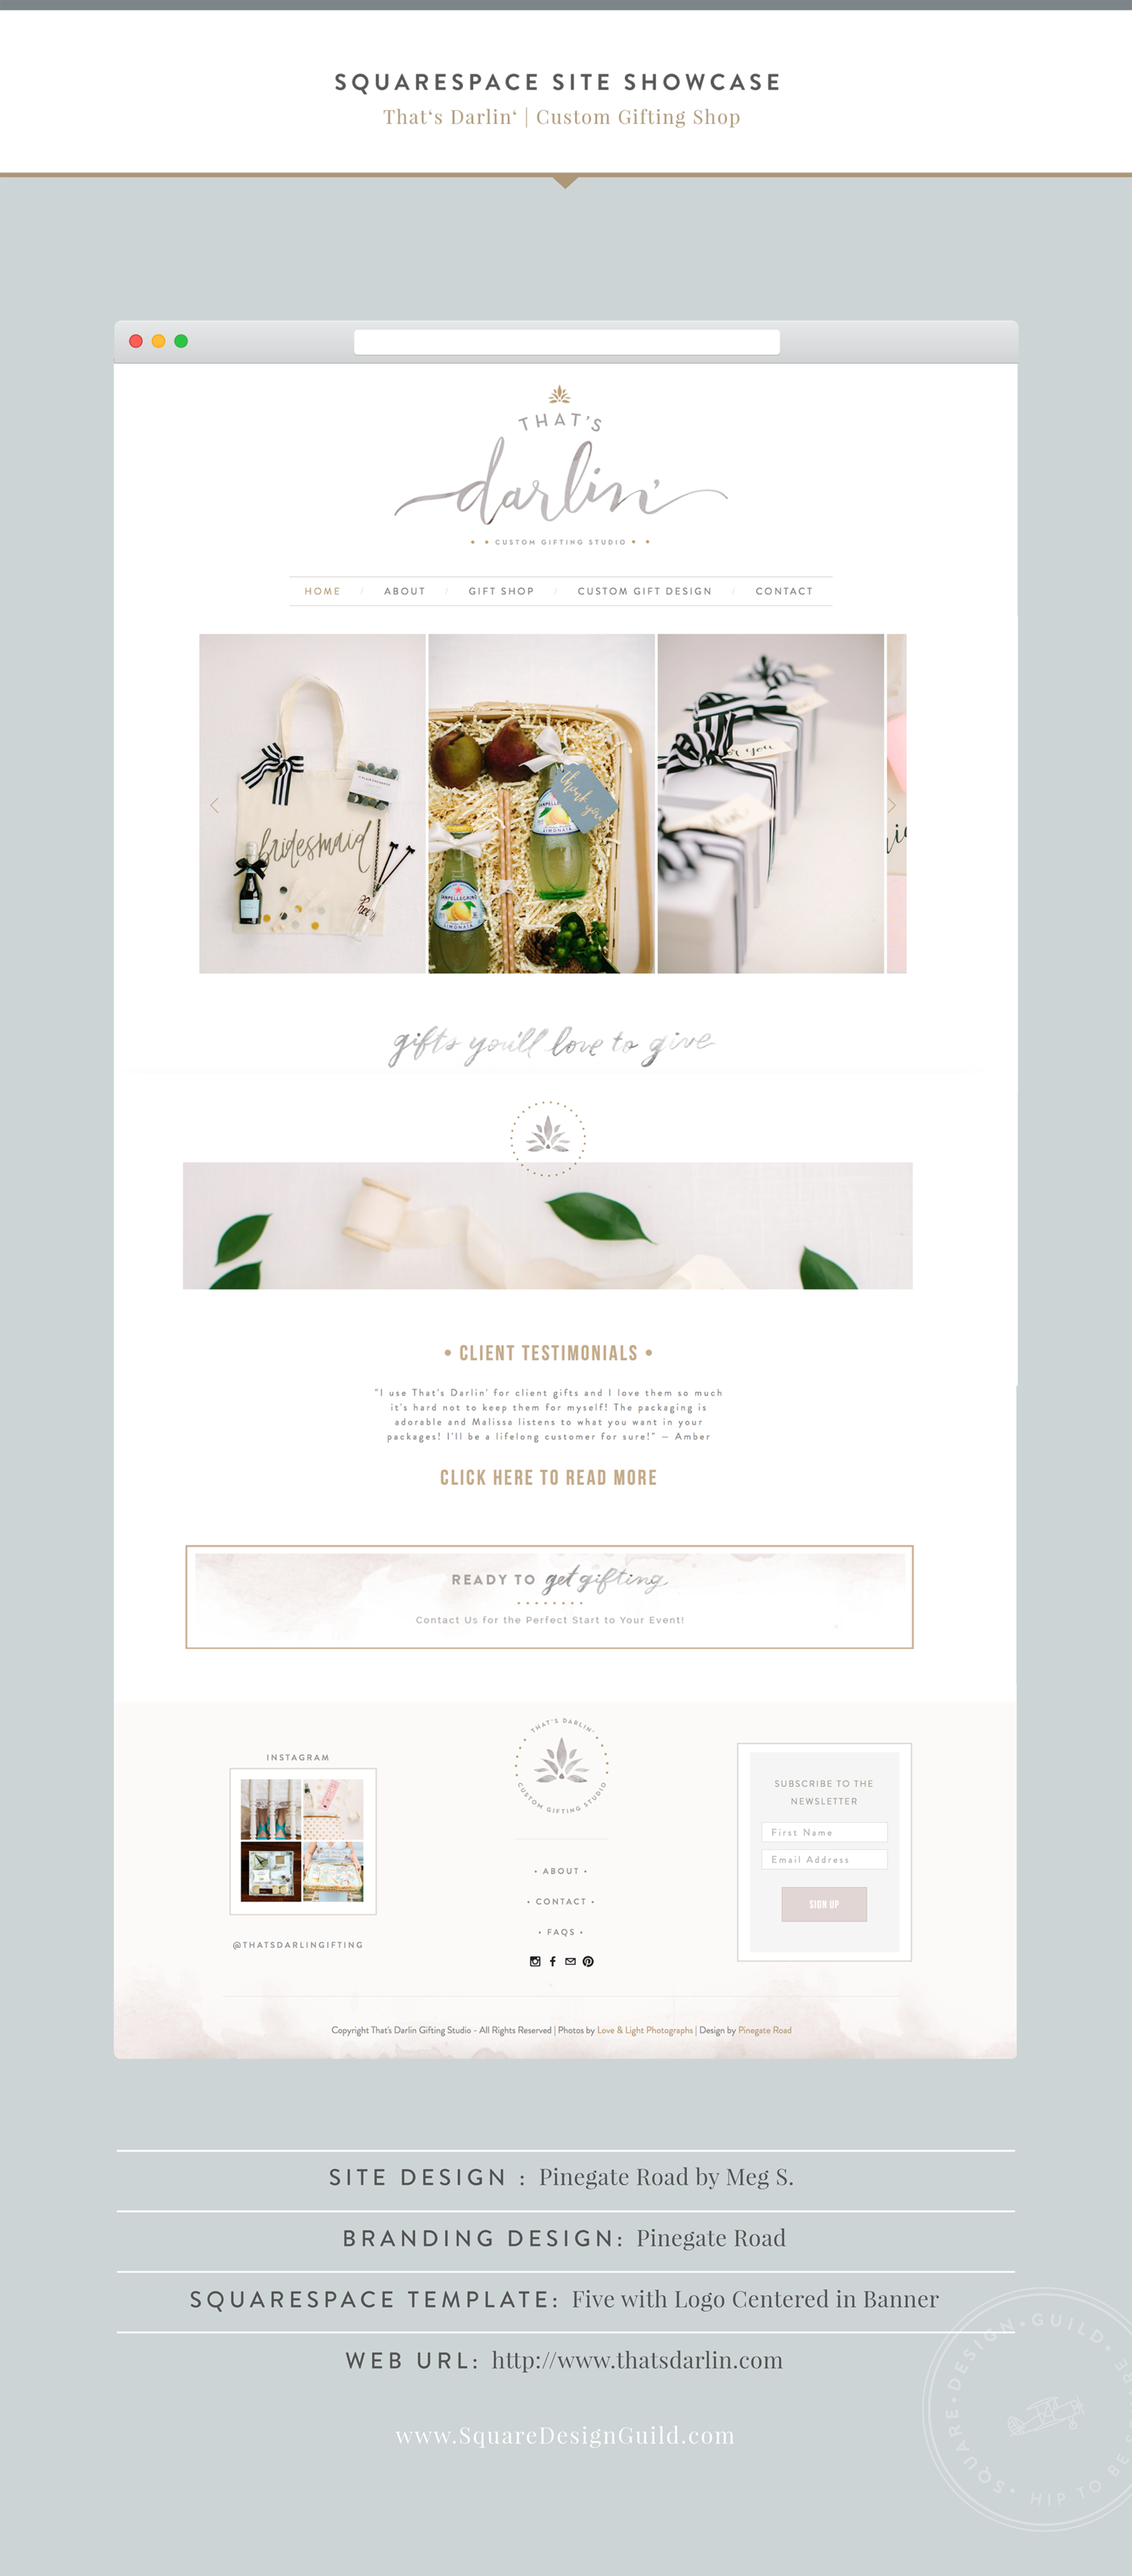 Squarespace design guild thats darlin by pinegate road five squarespace design guild thats darlin by pinegate road five template pronofoot35fo Gallery